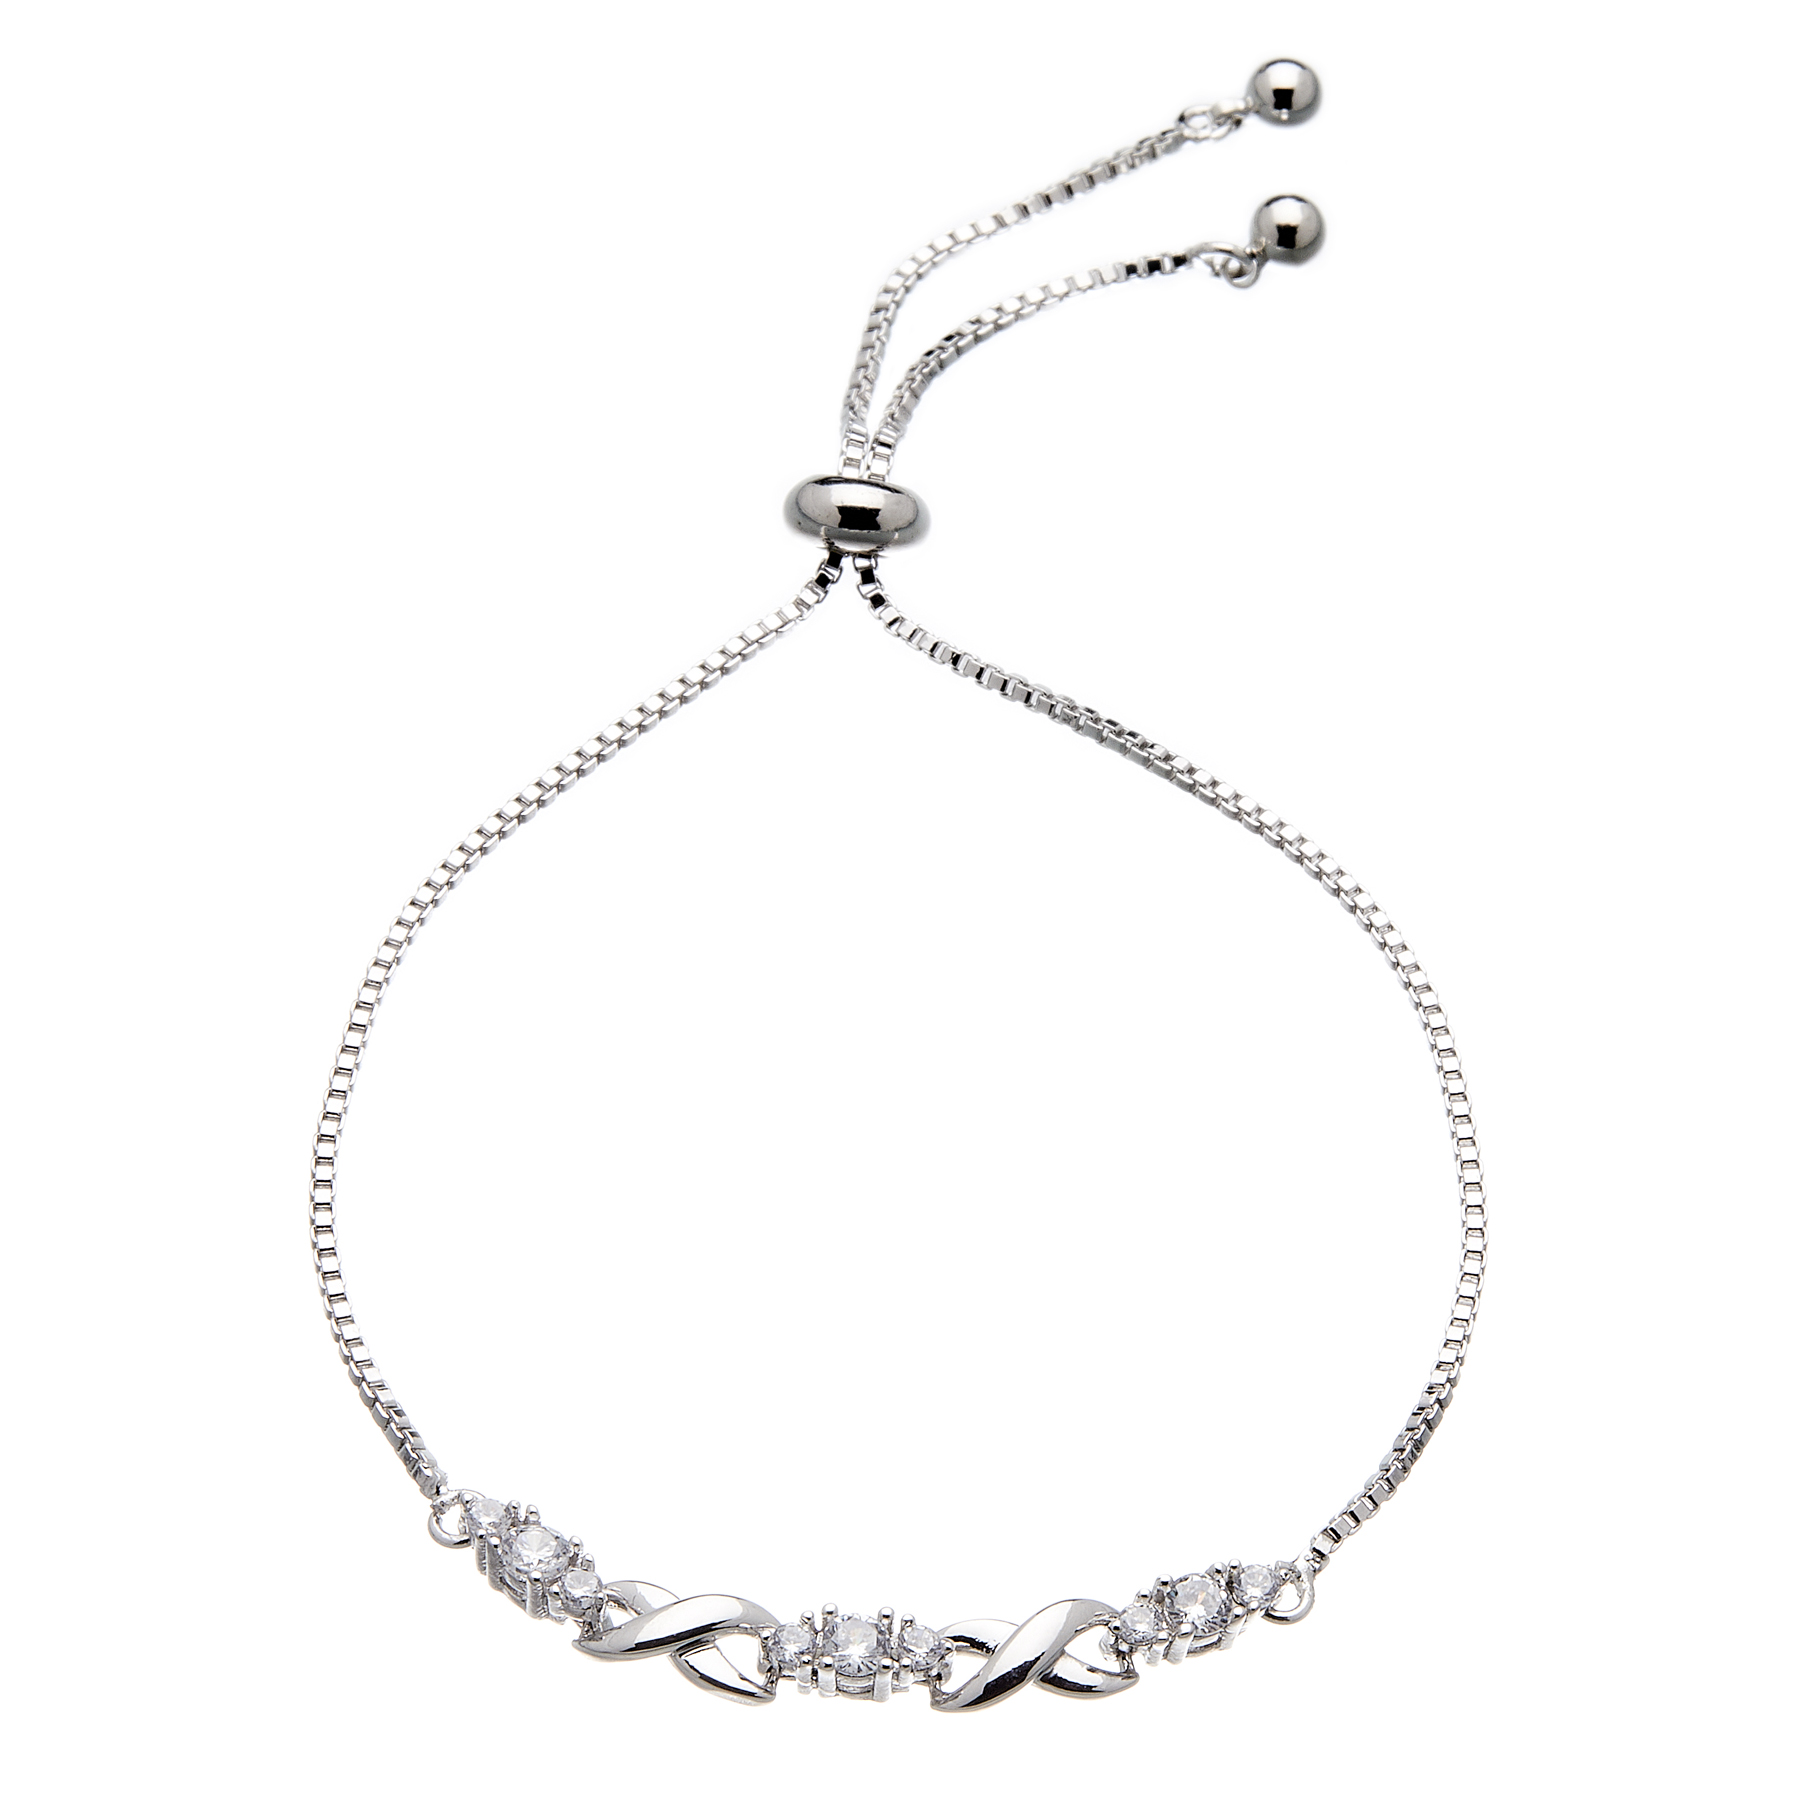 Silver Infinity Friendship Bracelet - adjustable sliding clasp with Cubic Zirconia Stones - Nadea